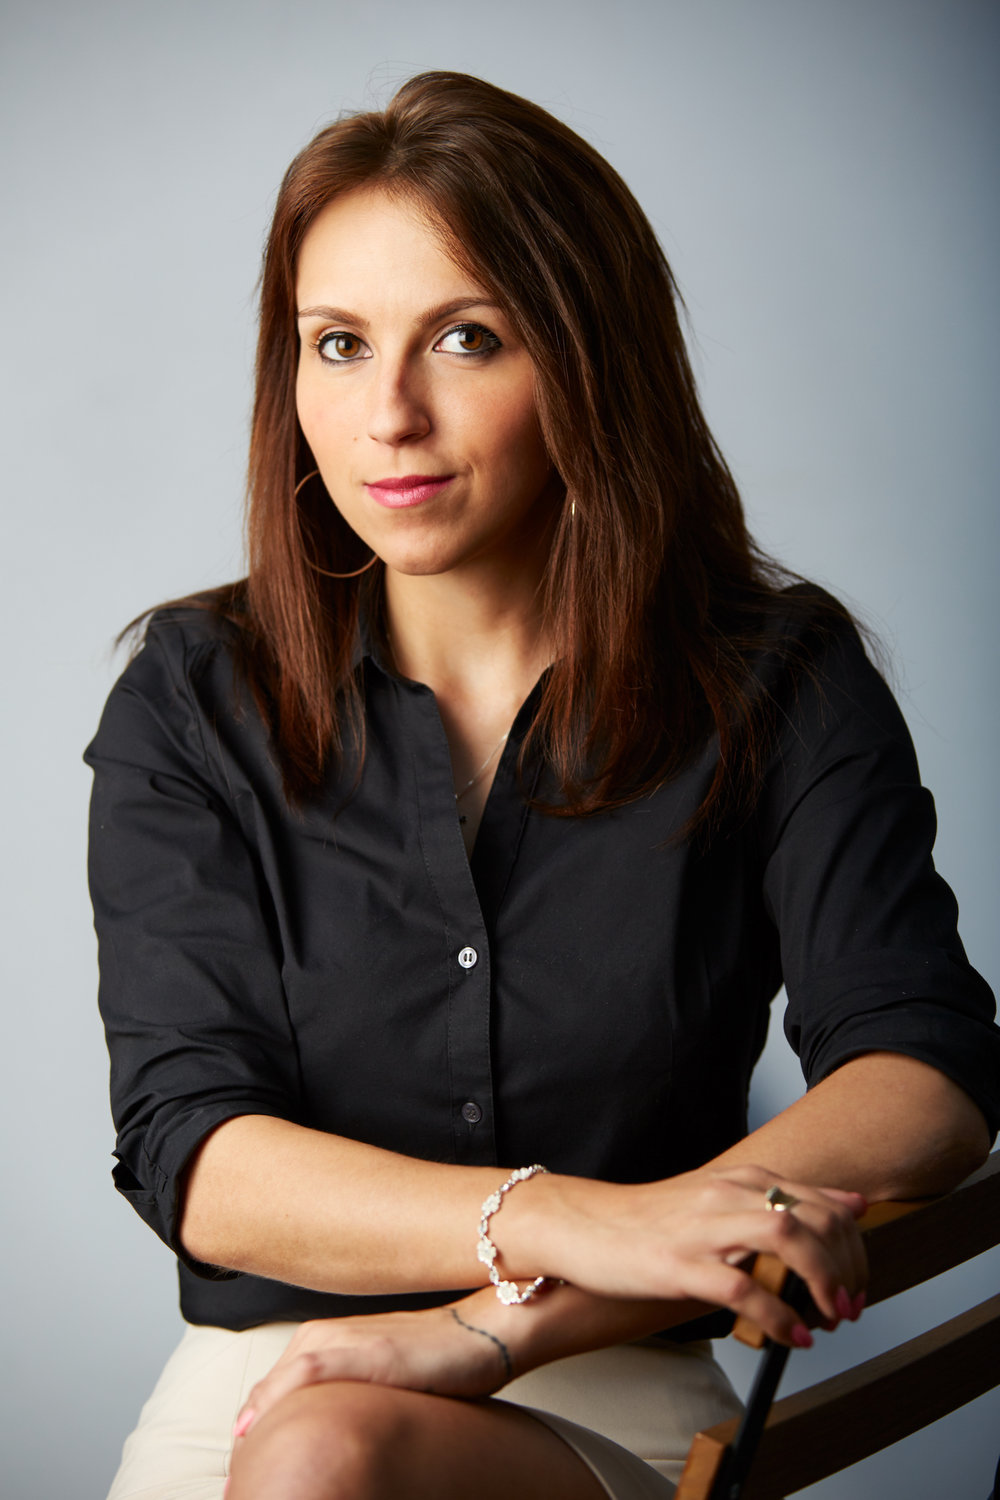 Female business headshot